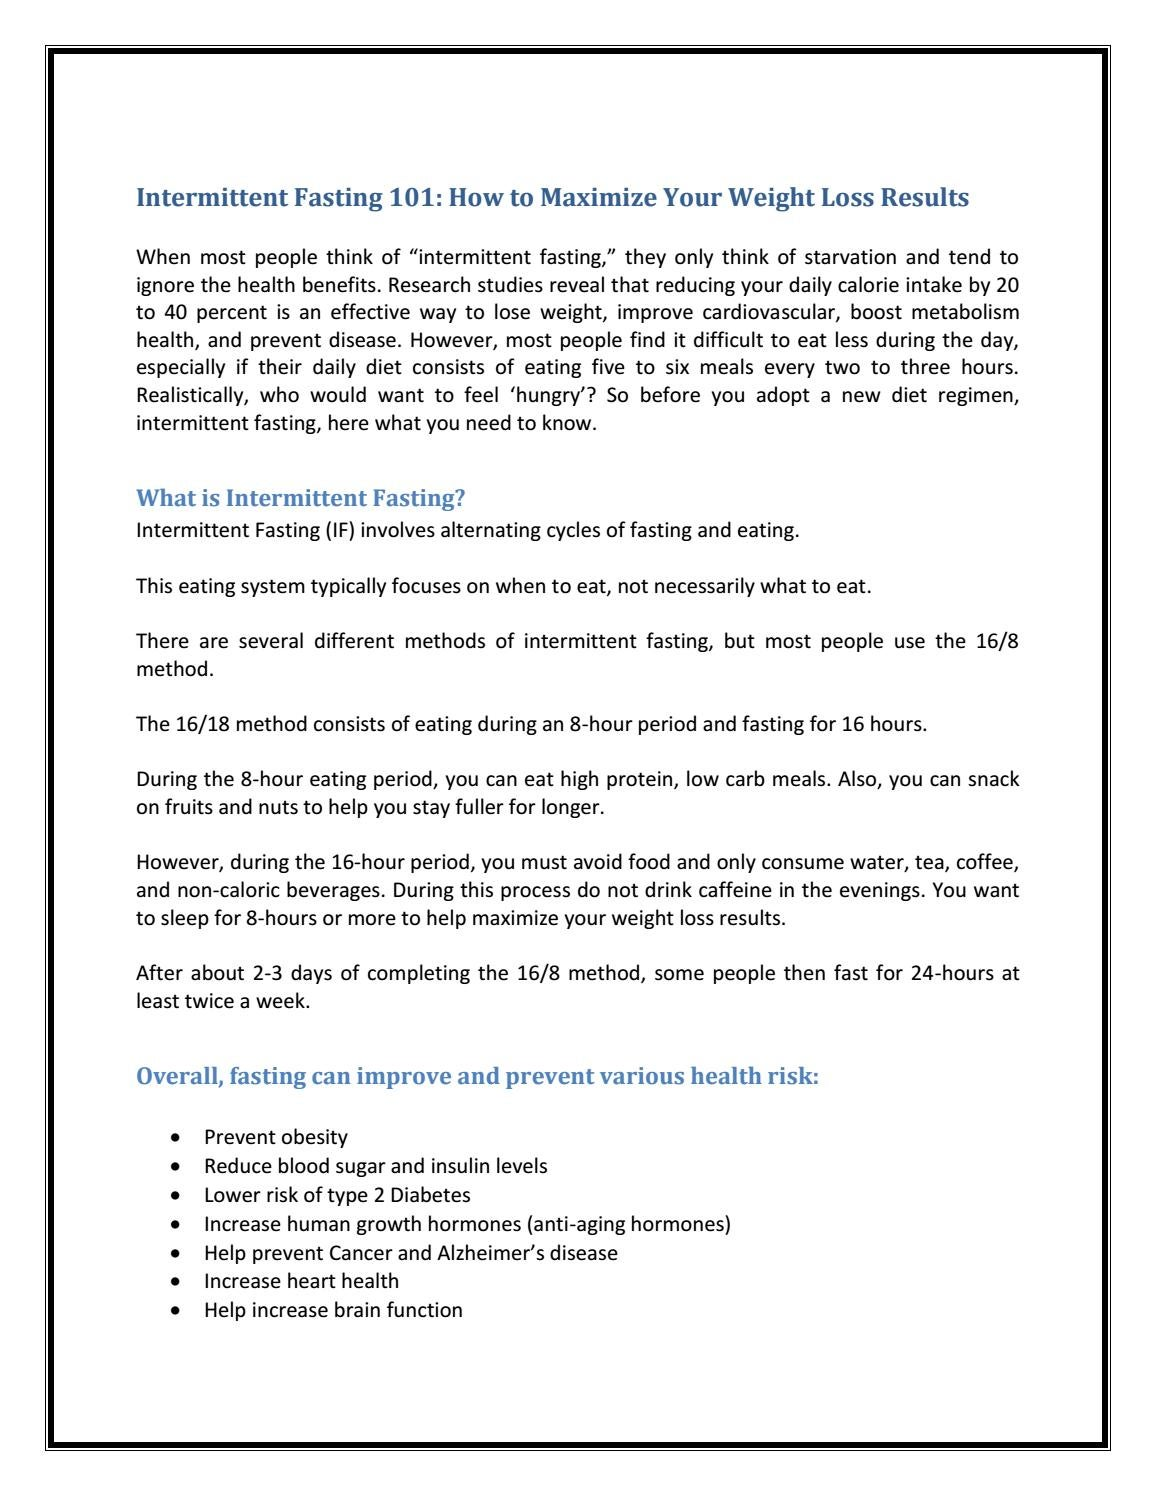 Intermittent Fasting 101: How to Maximize Your Weight Loss Results